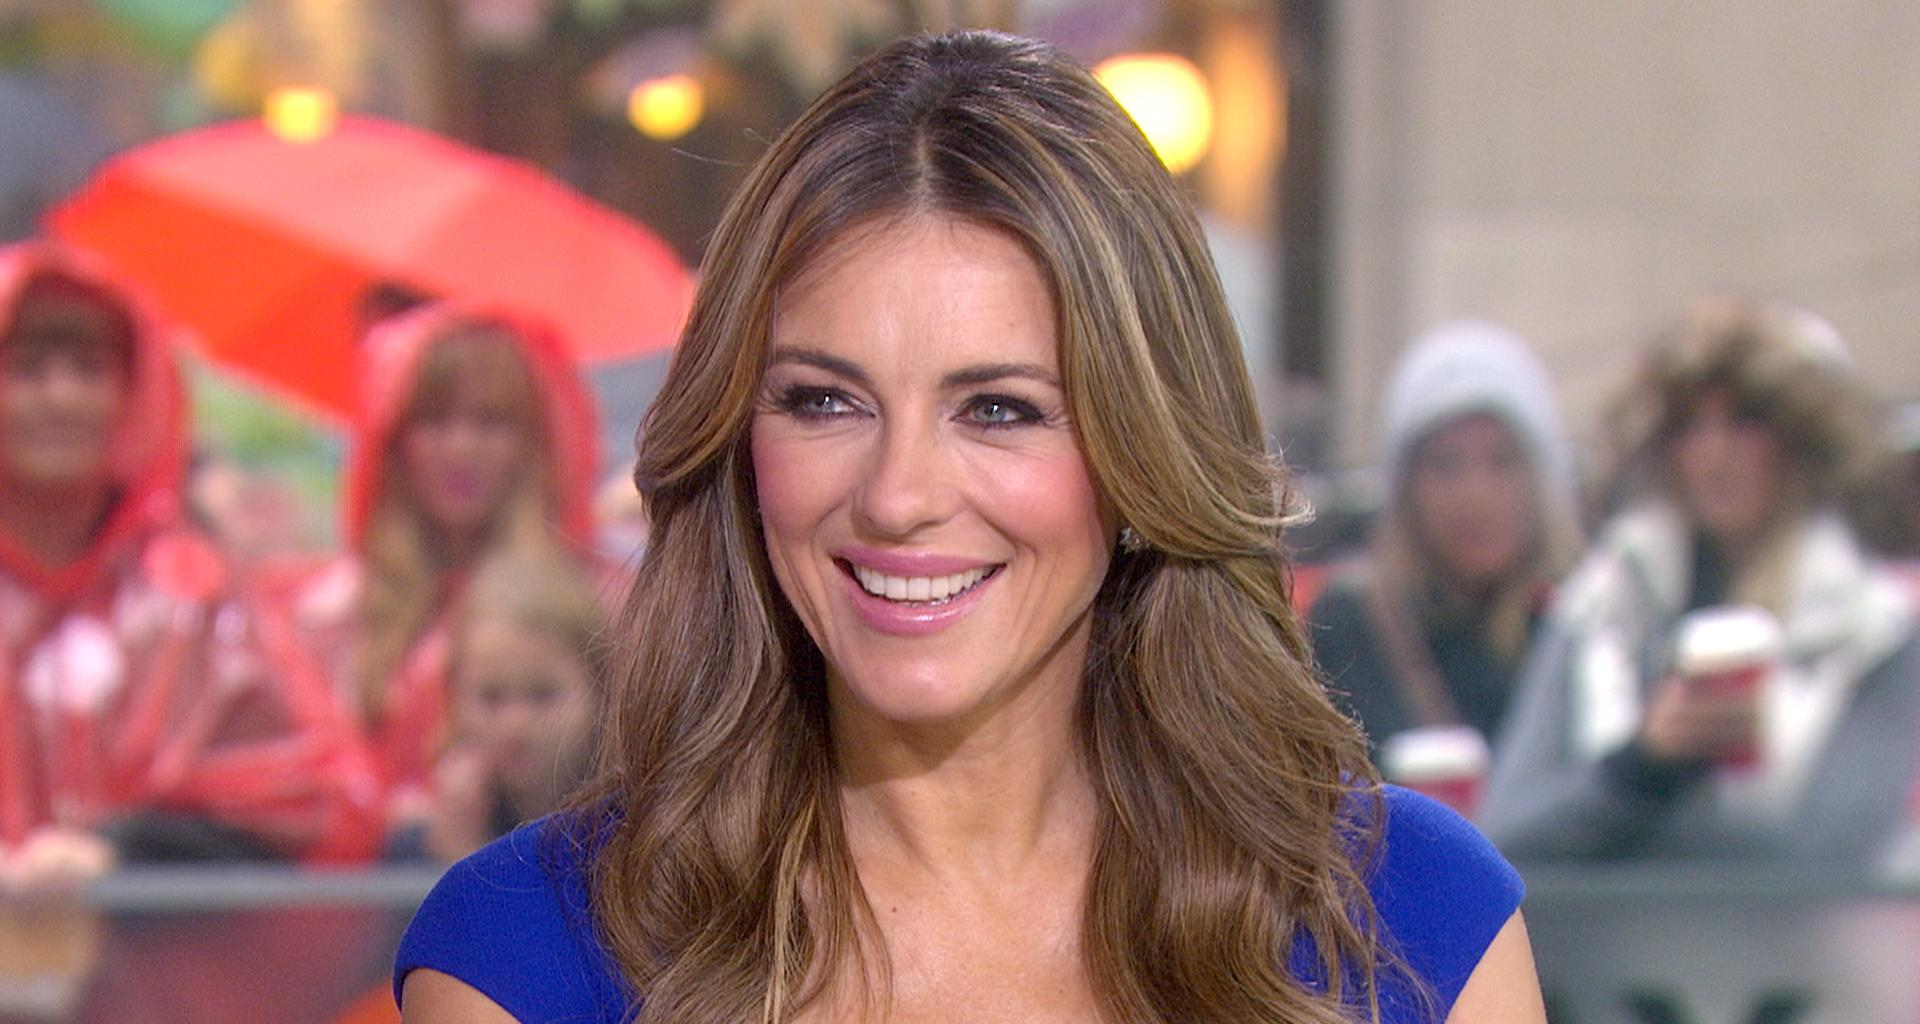 Elizabeth Hurley Shows Off Her Toned Abs In Pic With Her Mom On Her 80th Birthday